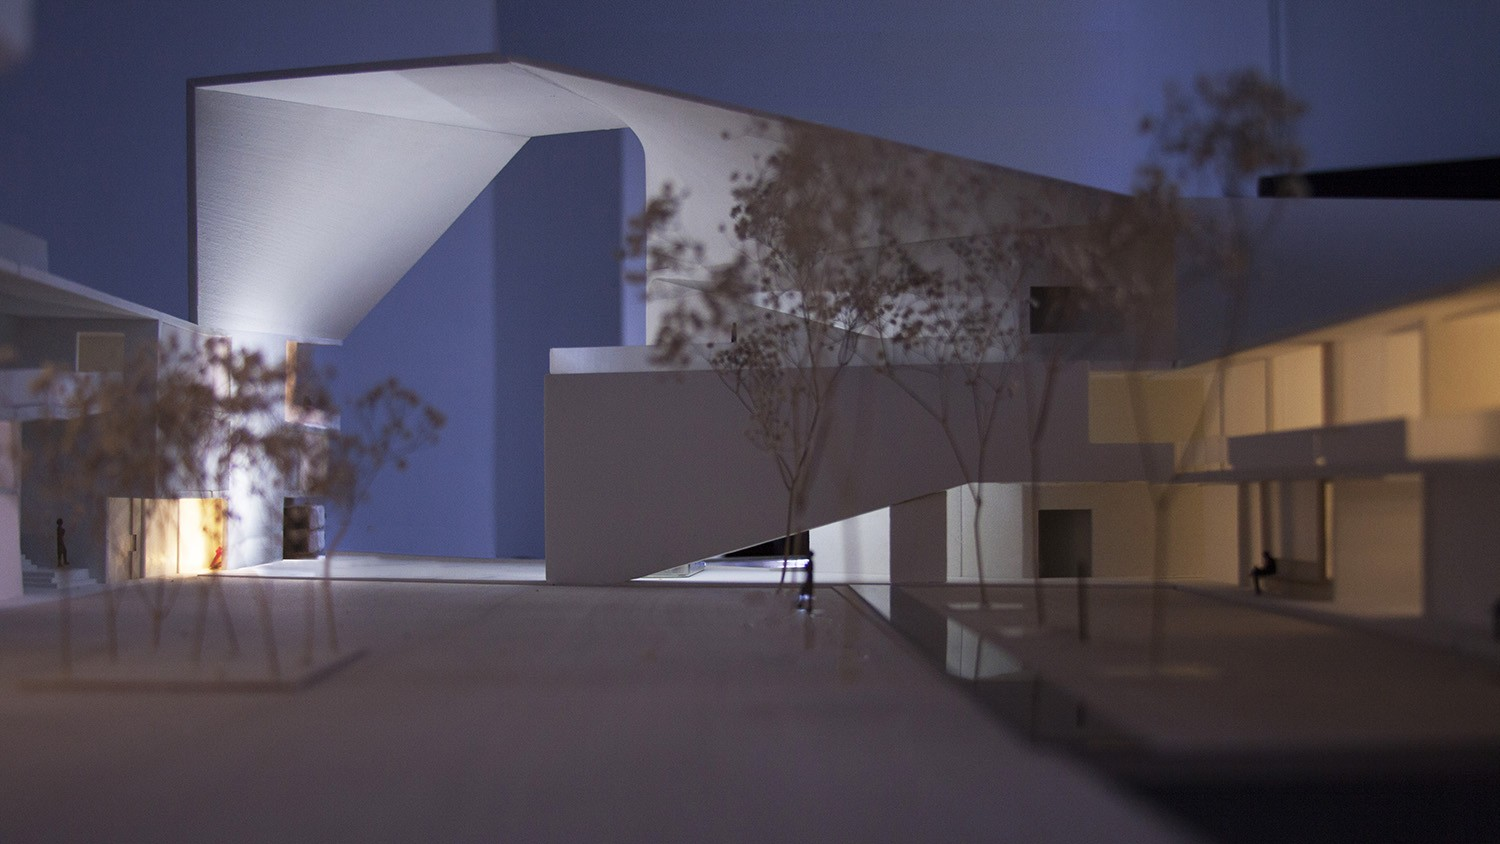 https://s3.us-east-2.amazonaws.com/steven-holl/uploads/projects/project-images/StevenHollArchitects_Bogota_IMG_6529-edit wip_WH.jpg